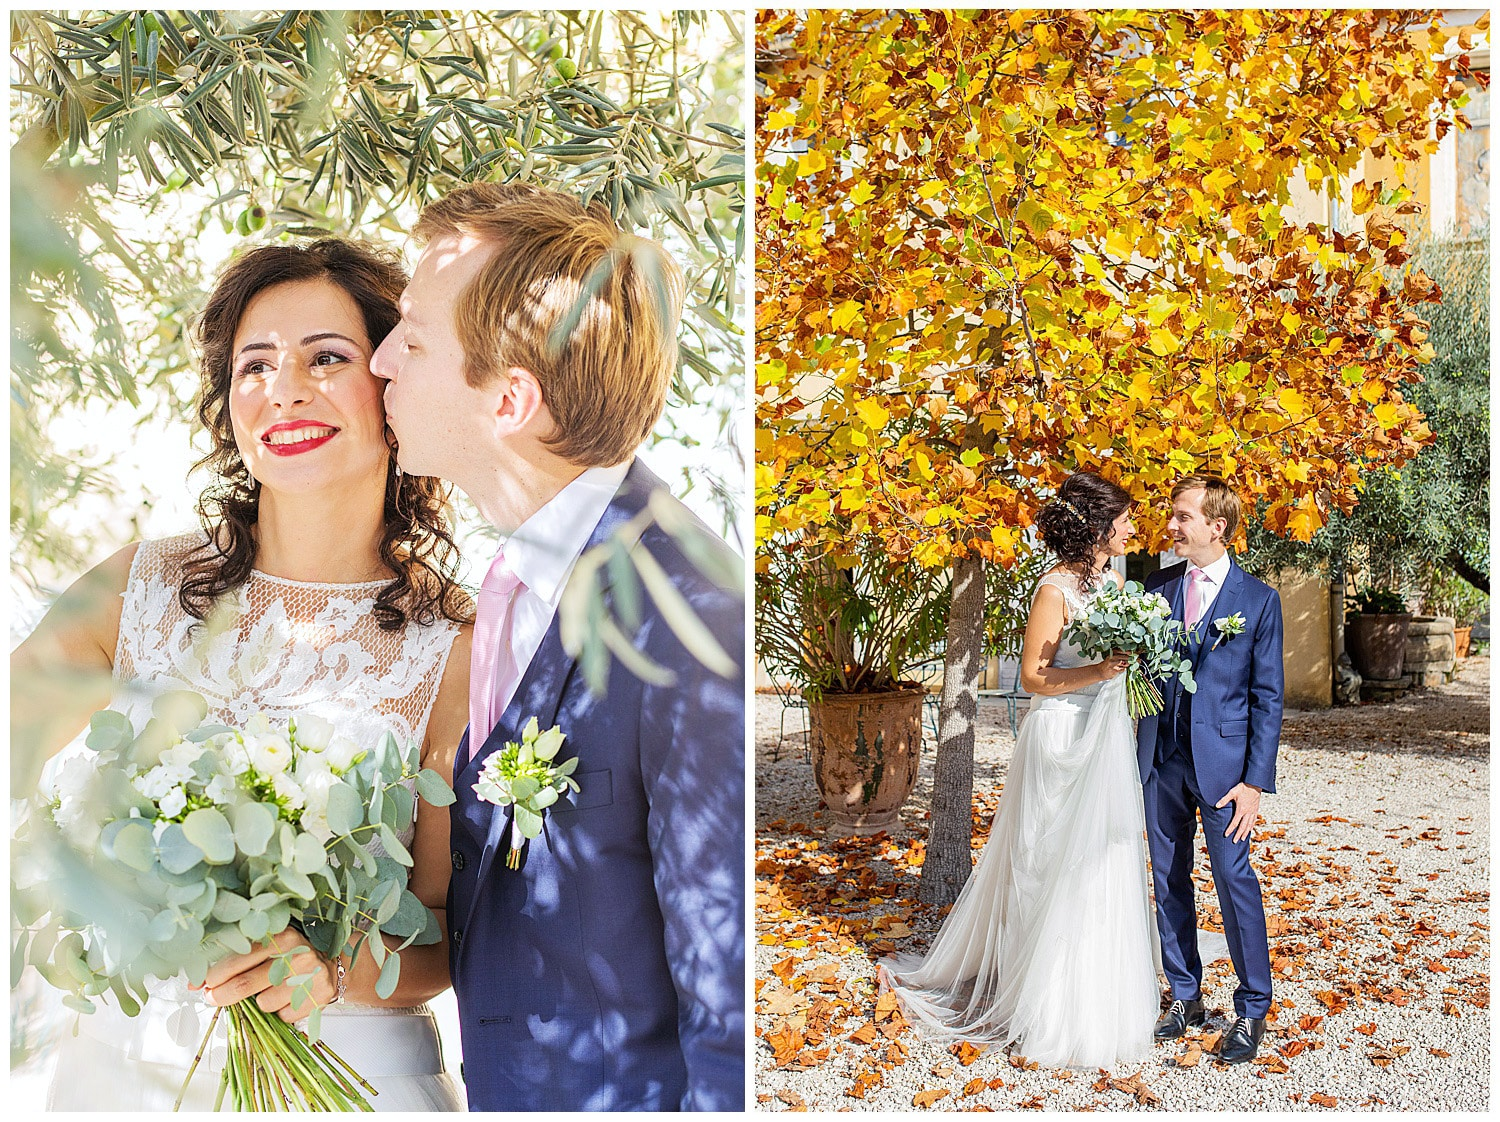 Marie Calfopoulos Engagement Wedding Photographer Photographe Mariage Paris Provence Luberon Avignon France